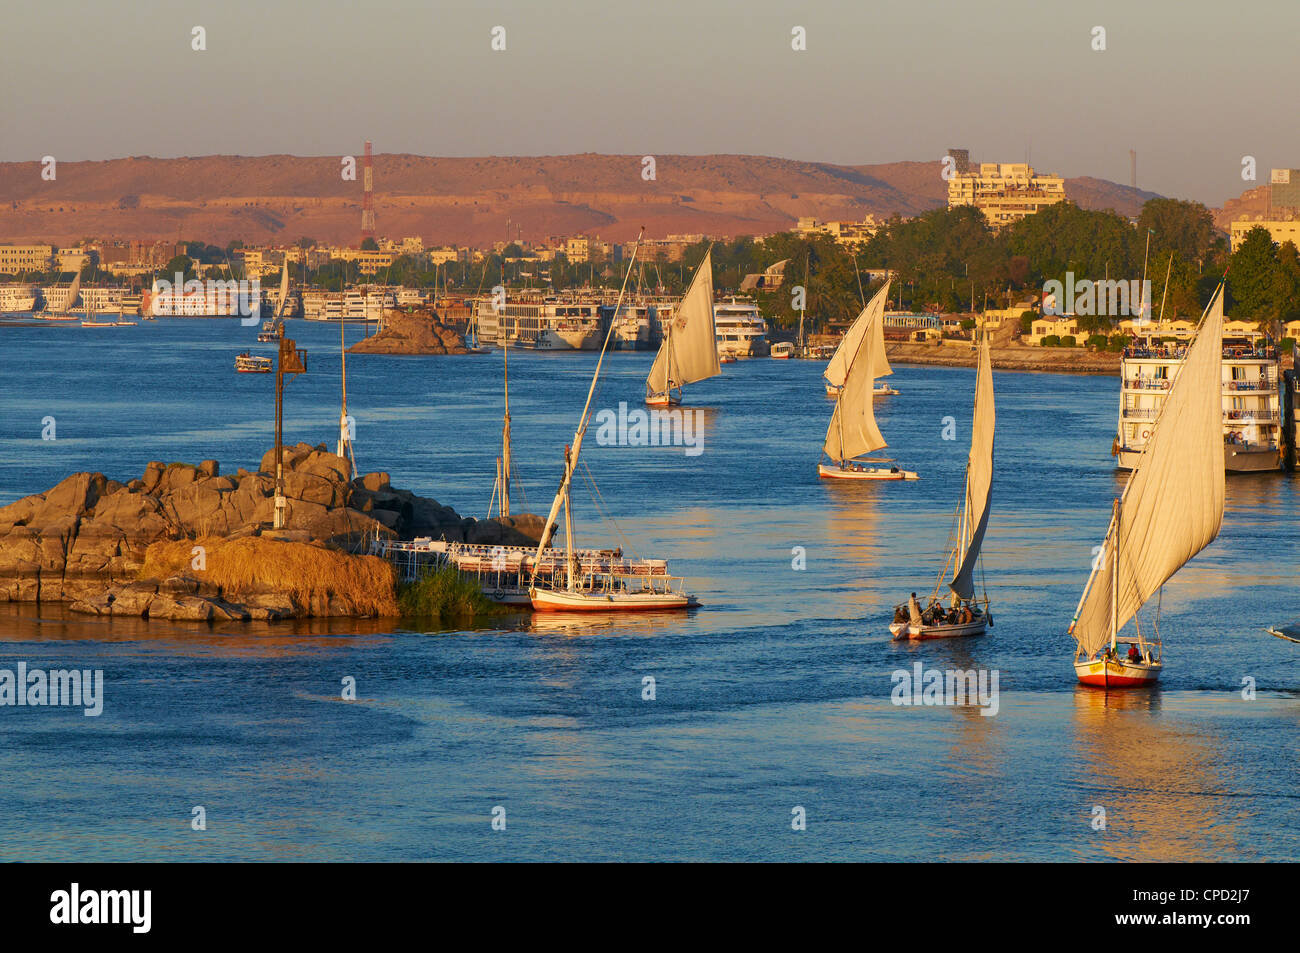 Feluccas on the River Nile, Aswan, Egypt, North Africa, Africa Stock Photo